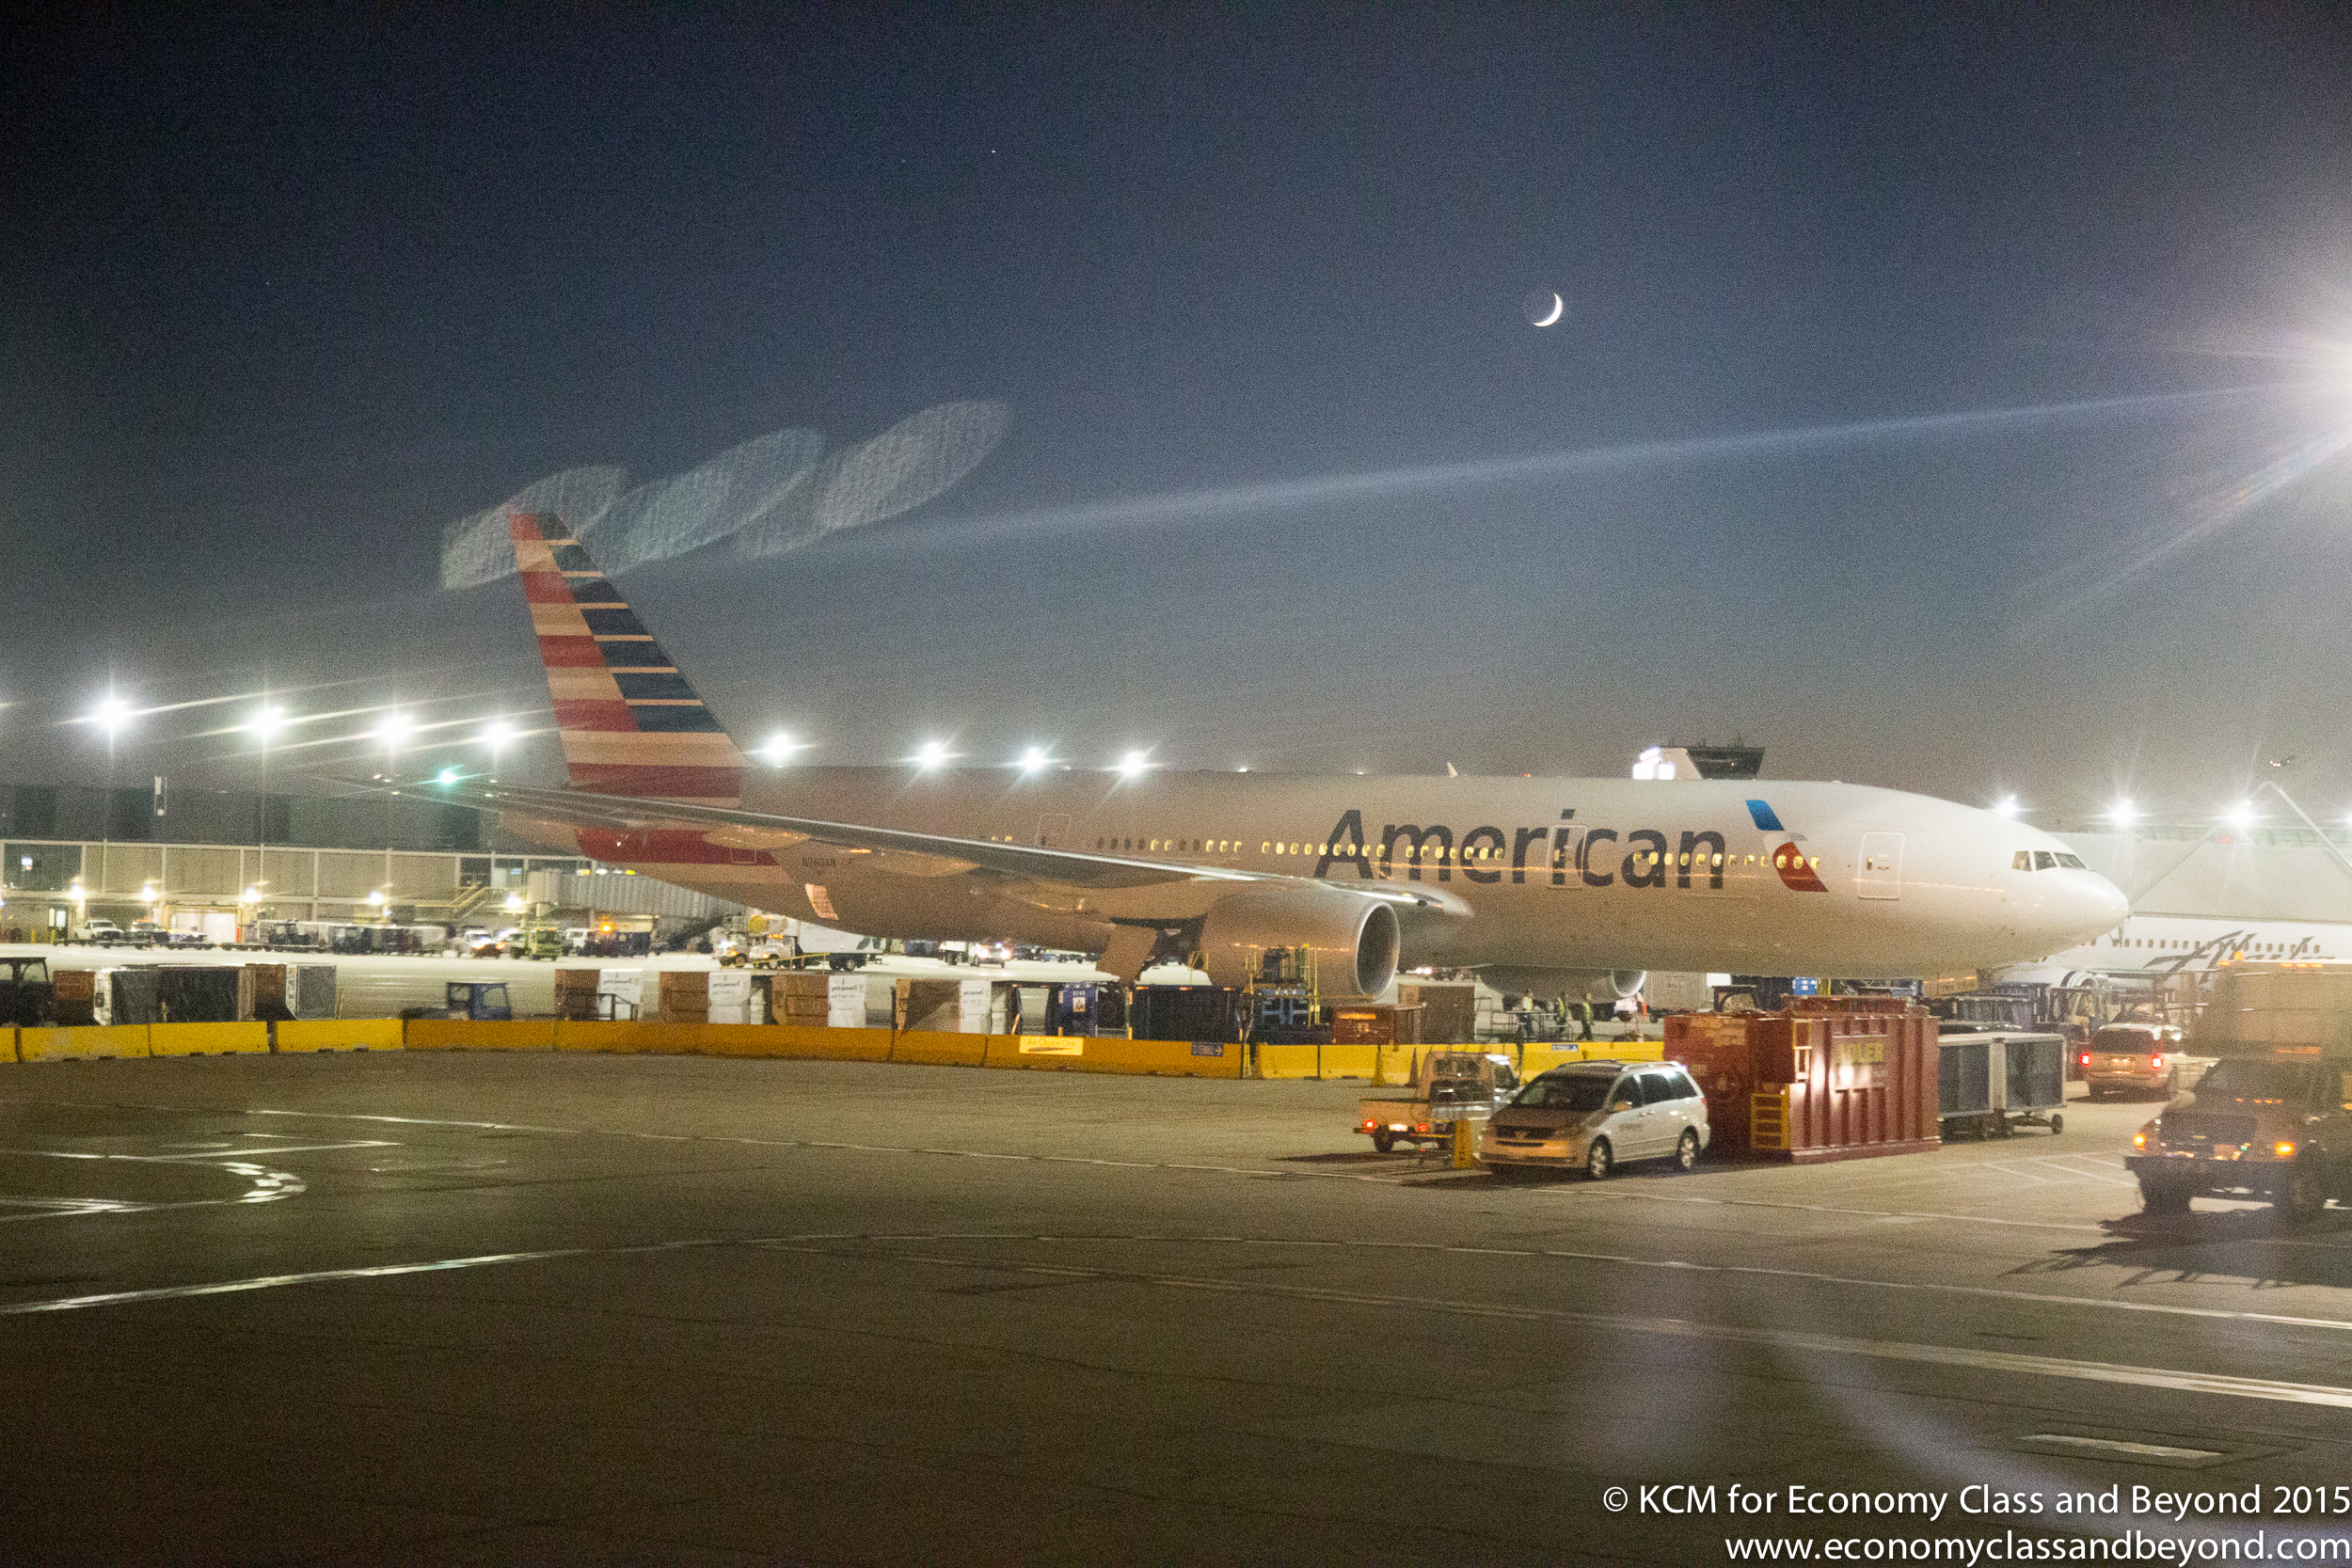 American Airlines Target Europe With 2 Class Boeing 777